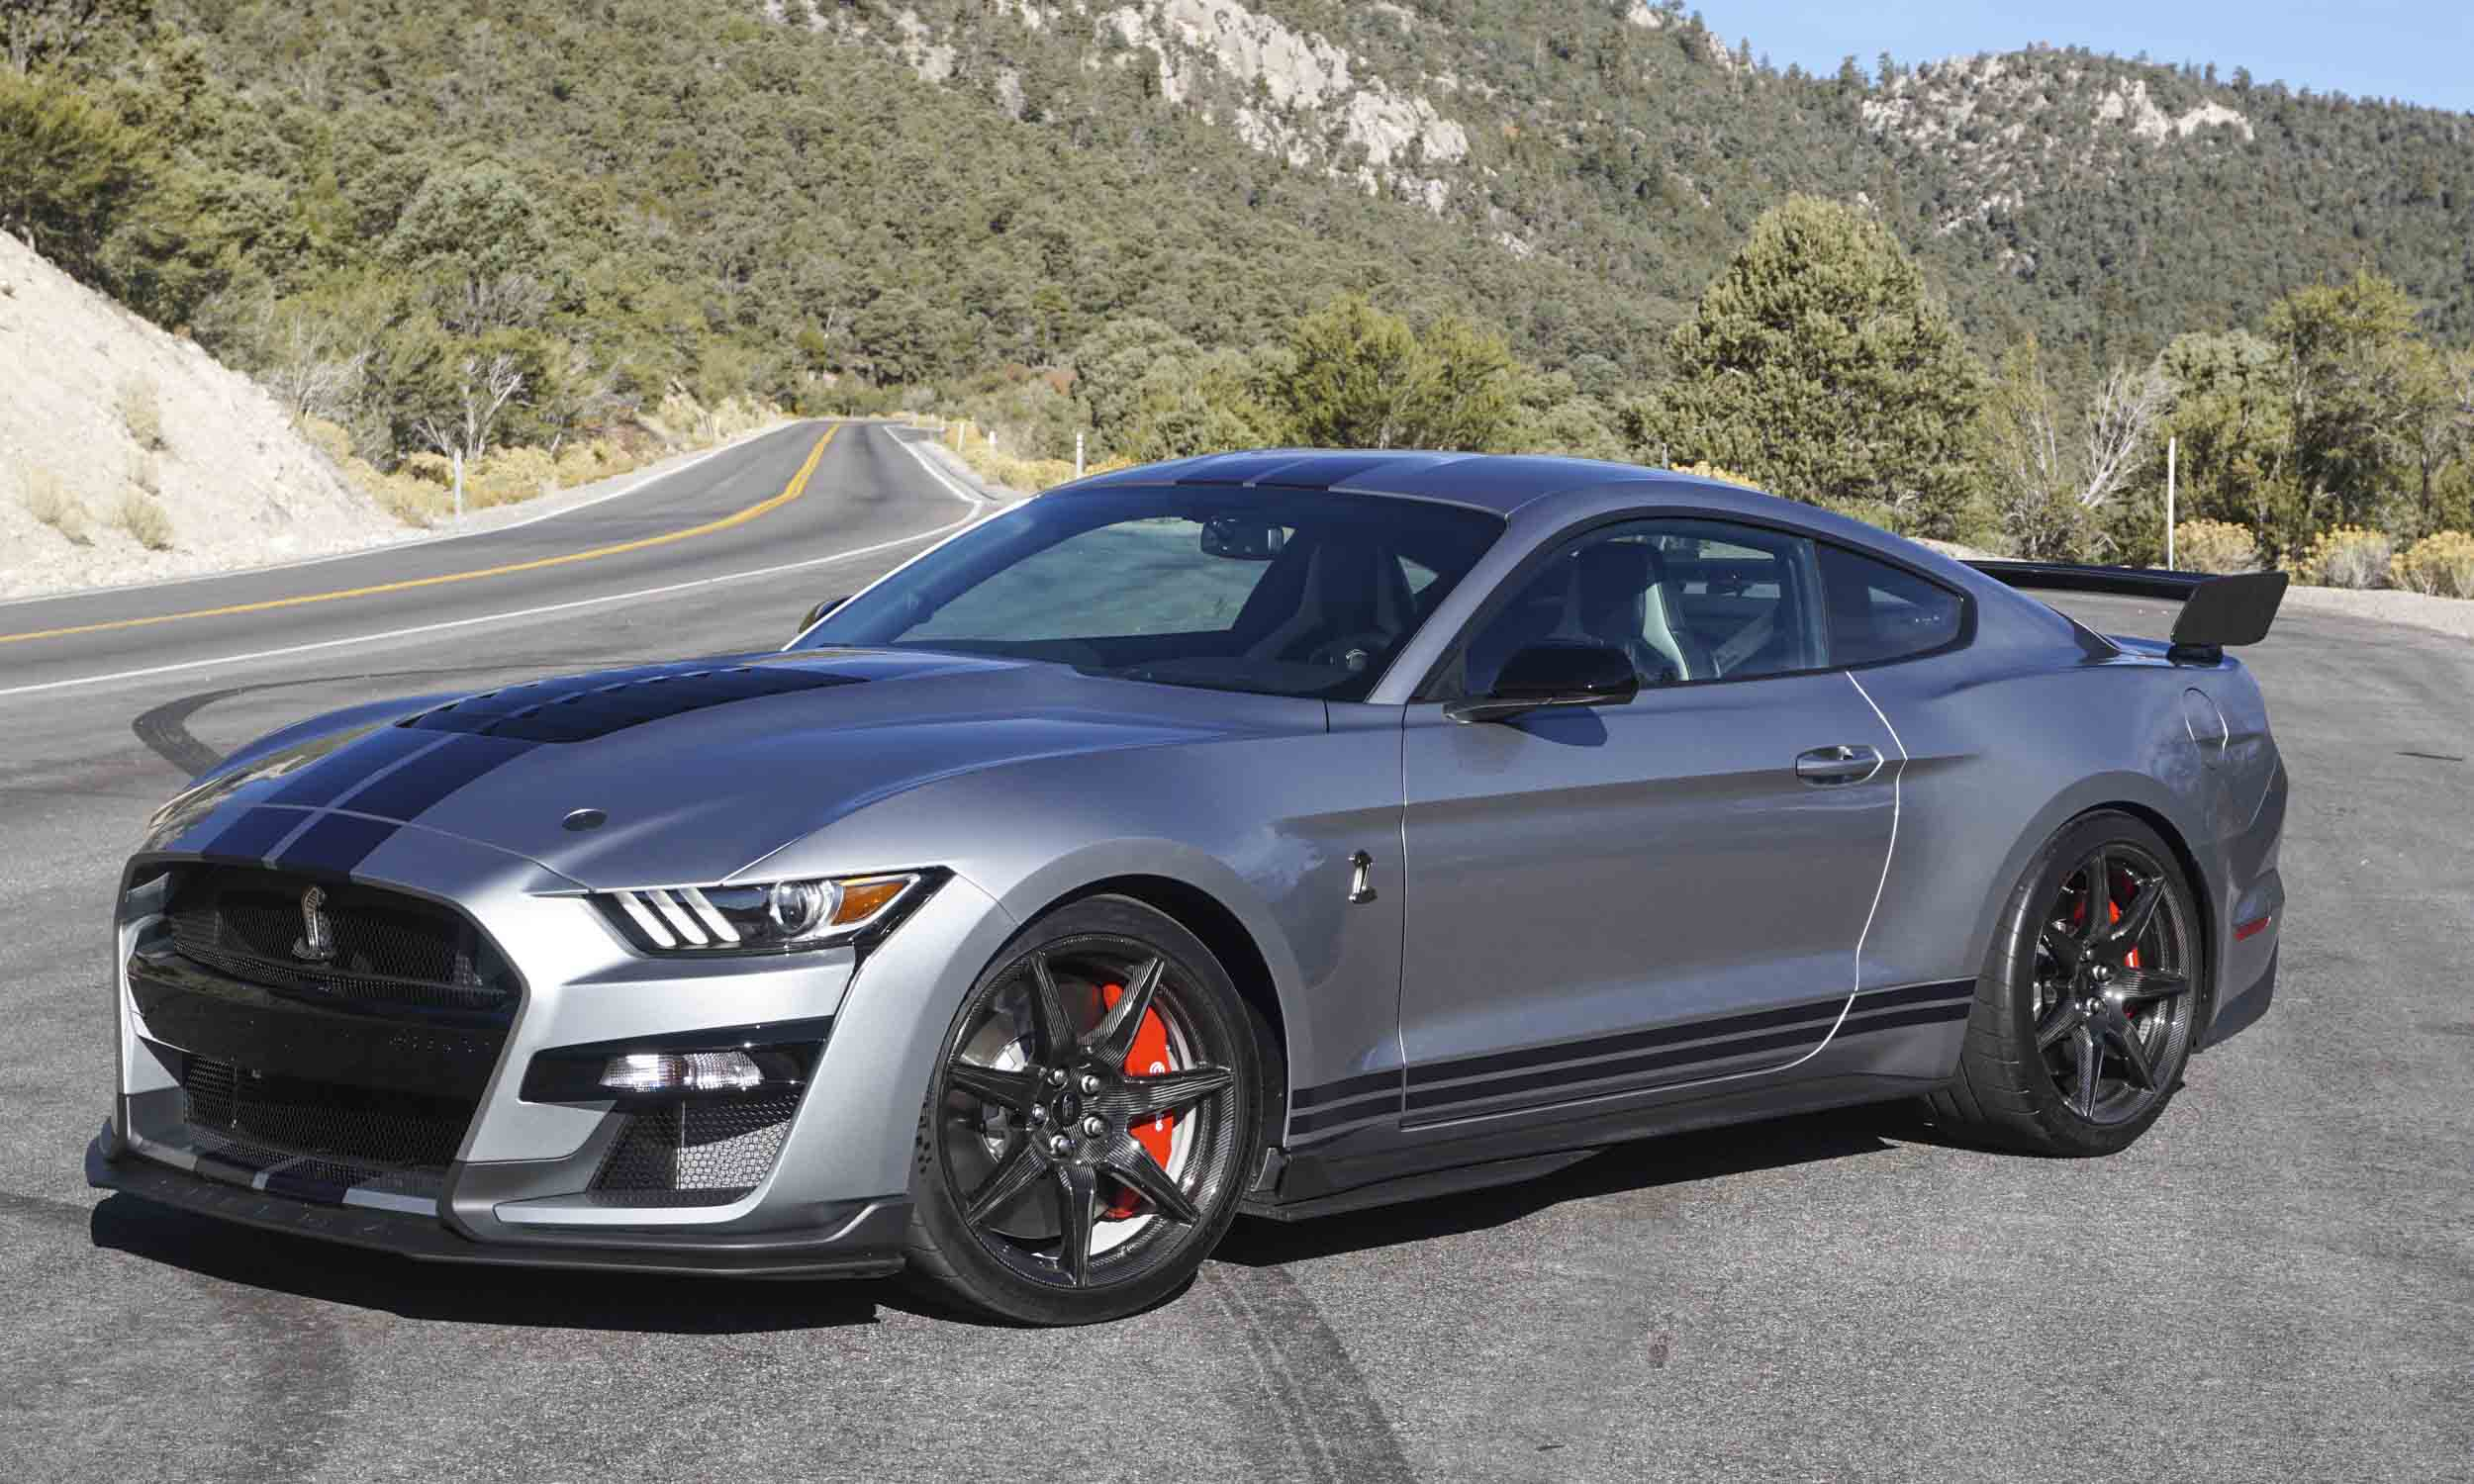 2020 Ford Mustang Shelby GT500: First Drive Review.